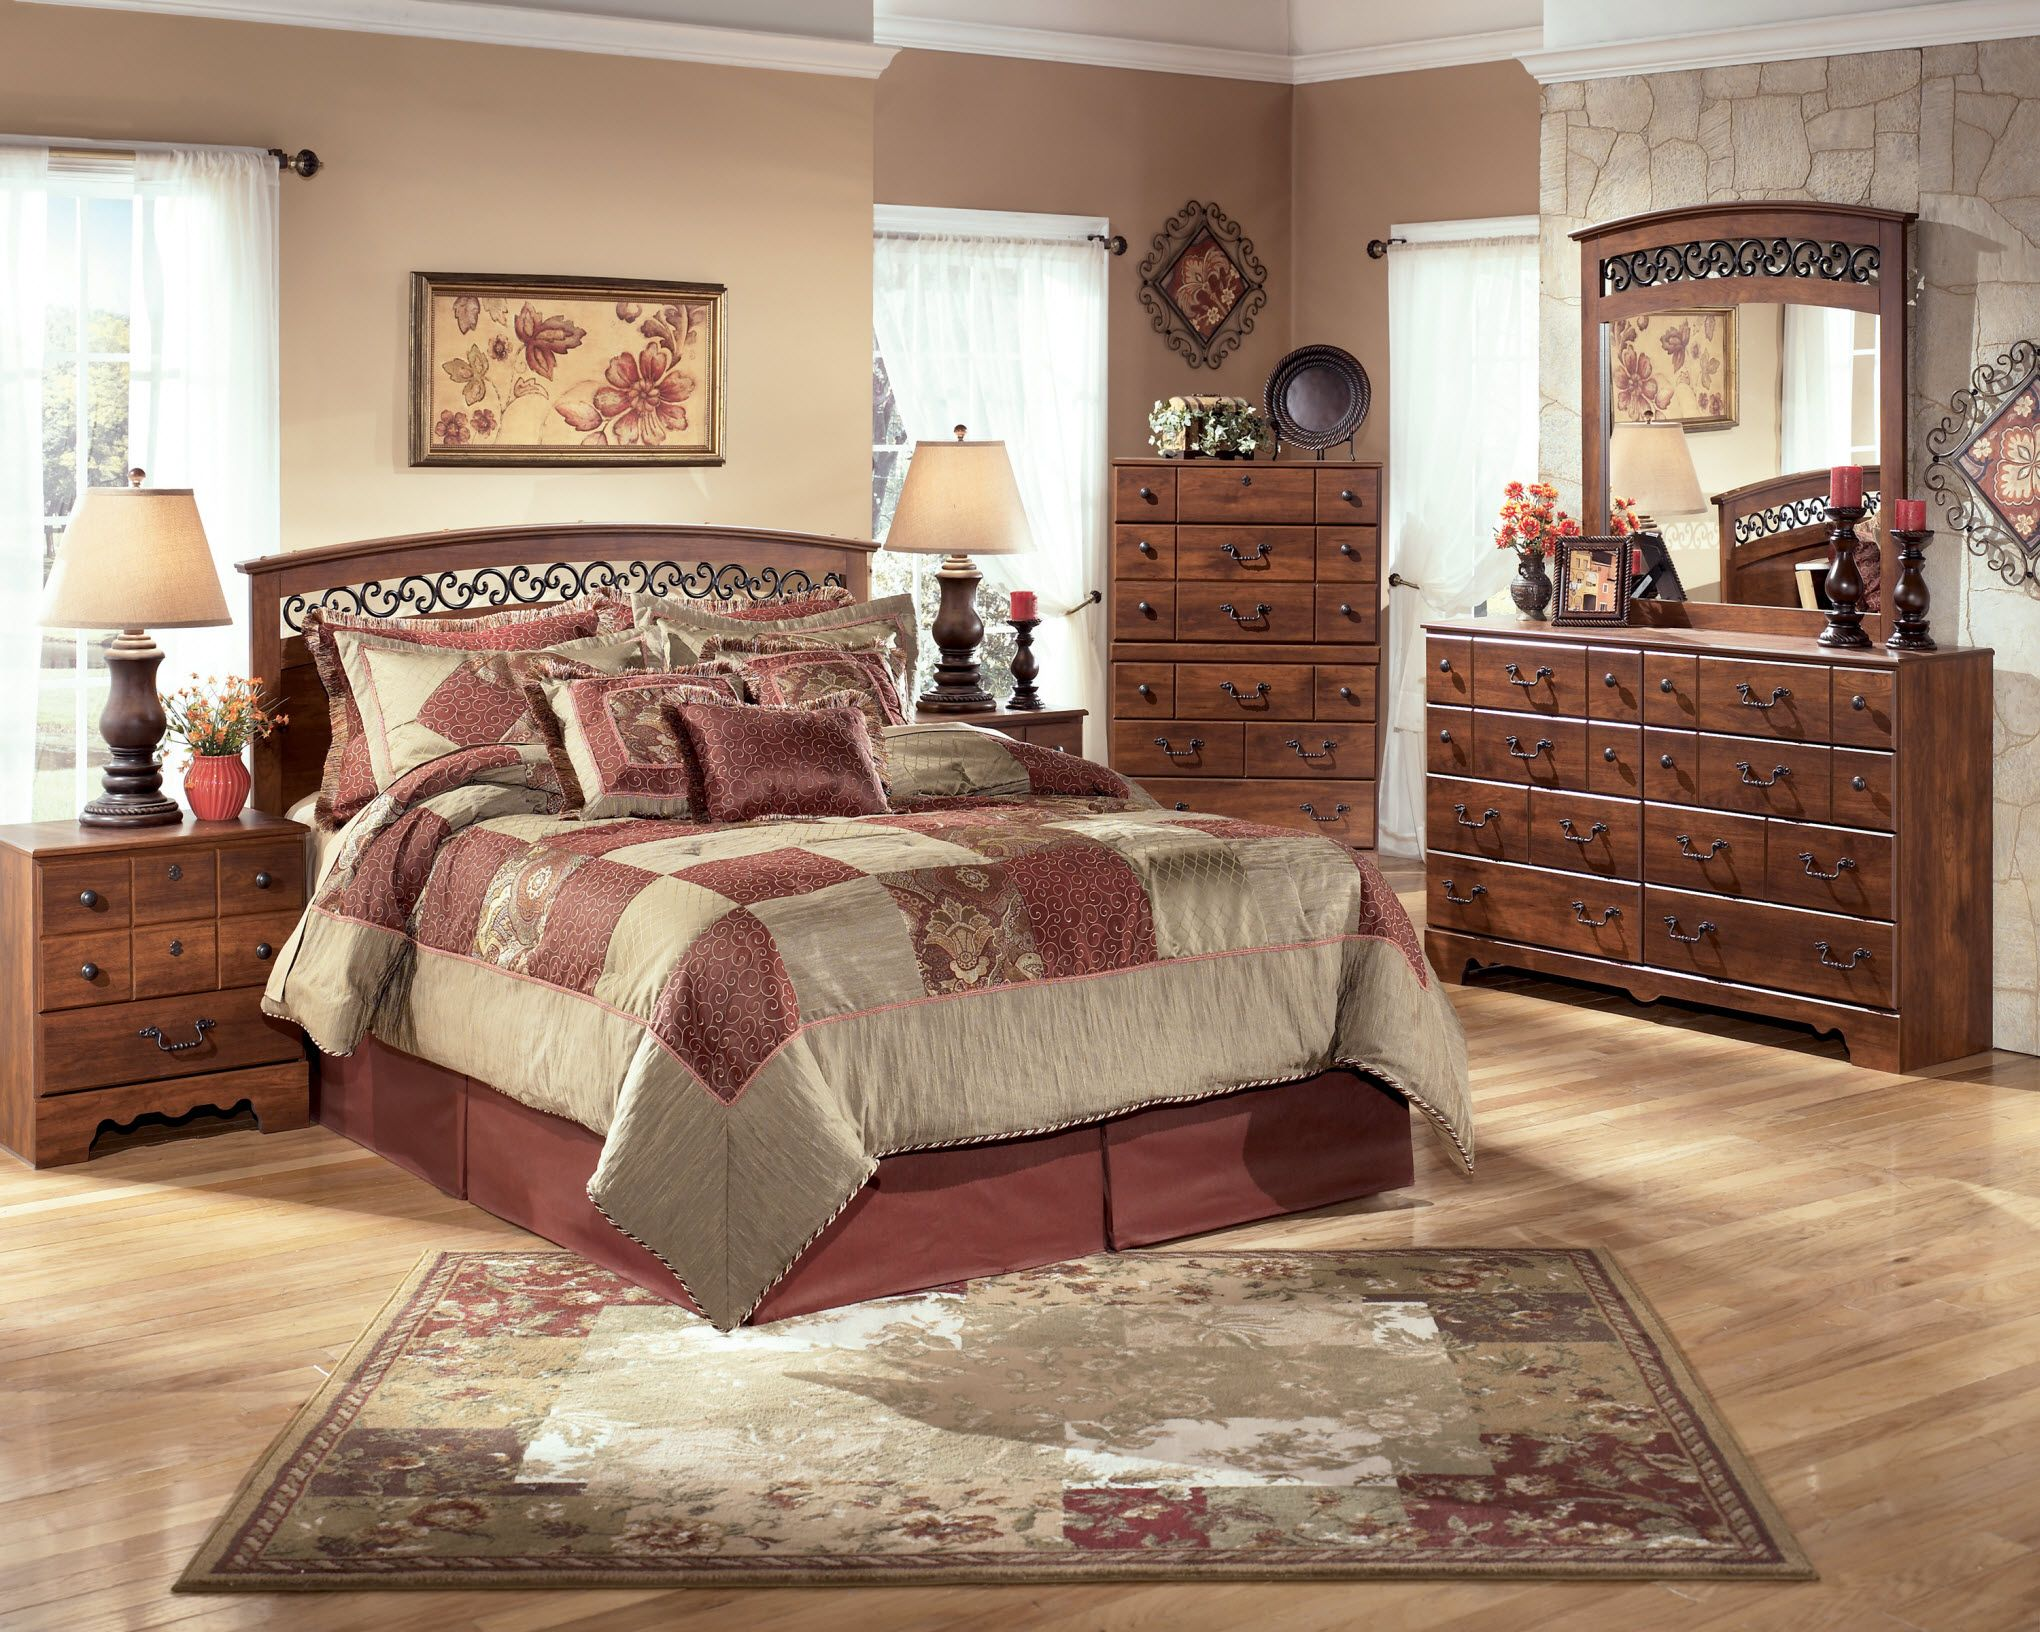 Marlo Furniture Bedroom Sets Marlo Furniture Bedroom Sets Idea 4moltqacom